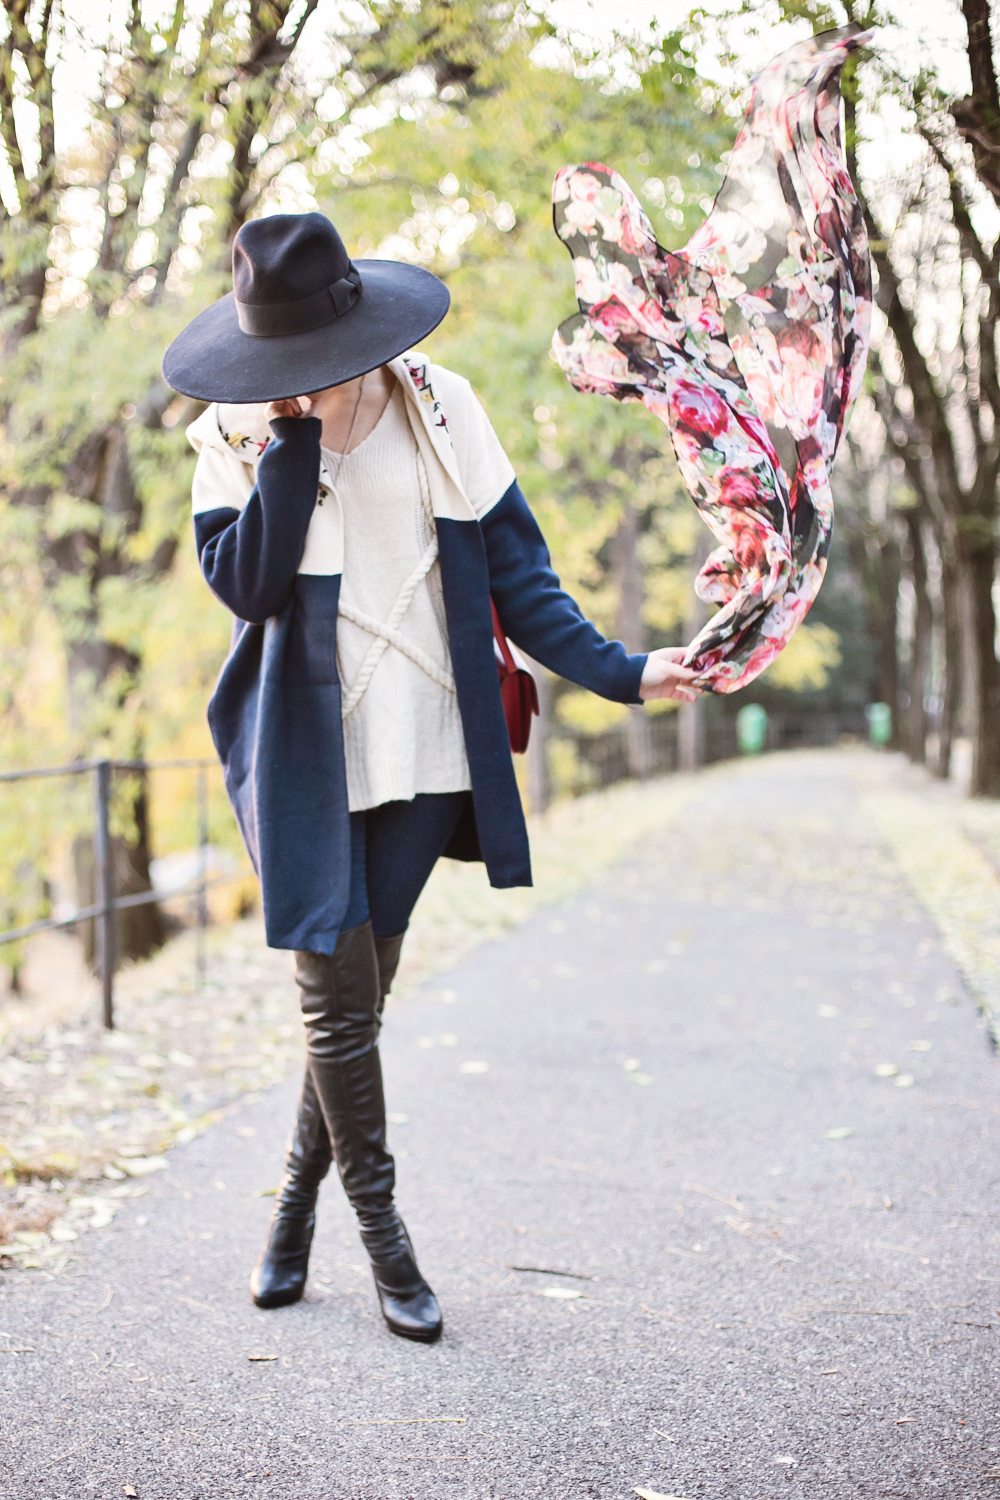 darya kamalova thecablook fashion blog russian blogger italy moda street style pixie short hair fashion blogger zara men hat sheinside cardigan sweater over knee boots bagatt dr denim jeans celine classic box bag flower scarf brescia-17 copy